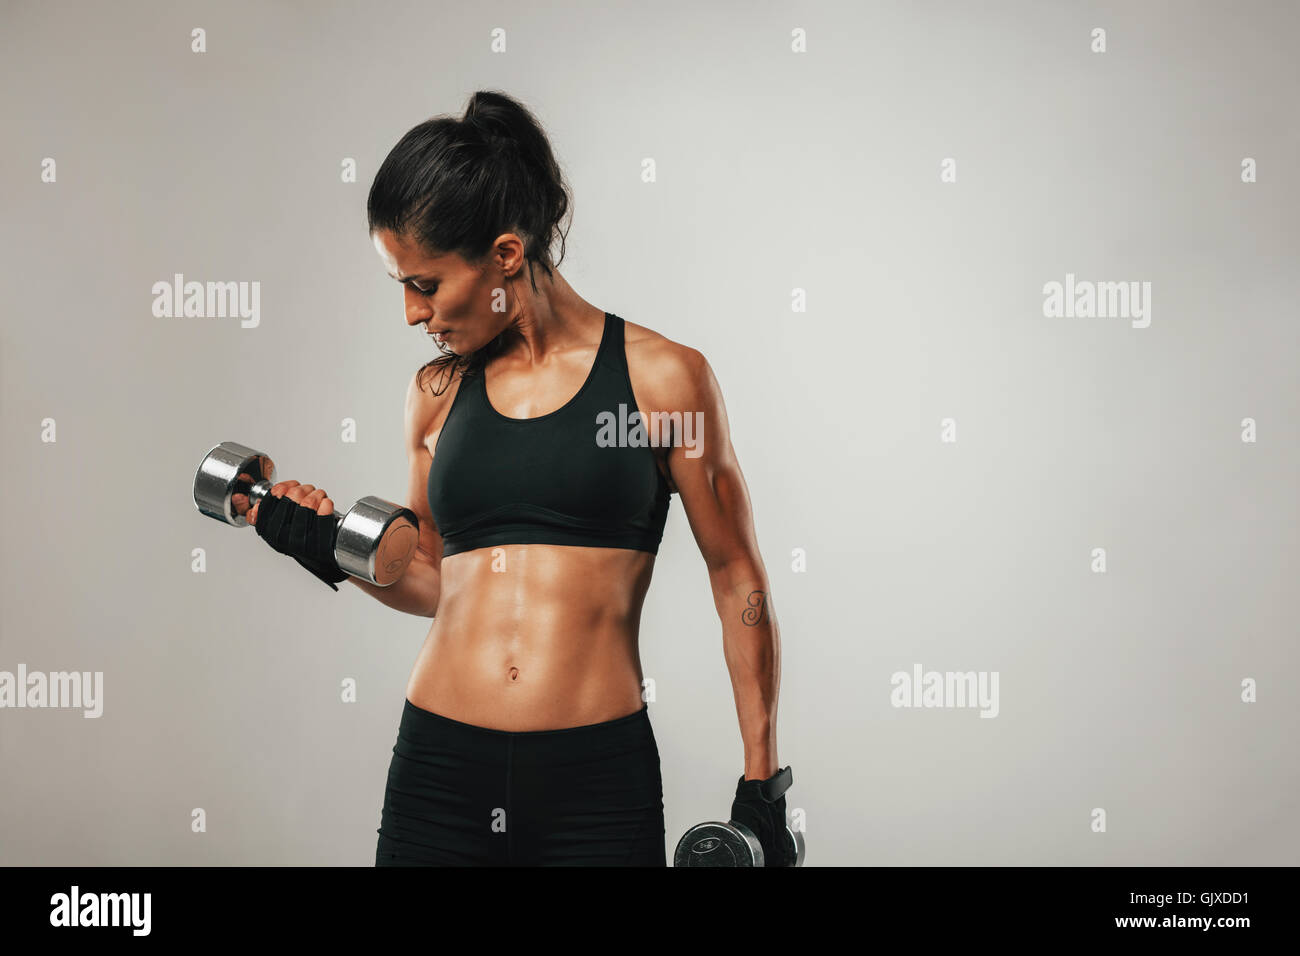 Strong woman with tied up black hair and shorts curling dumbbell over gray background with copy space - Stock Image